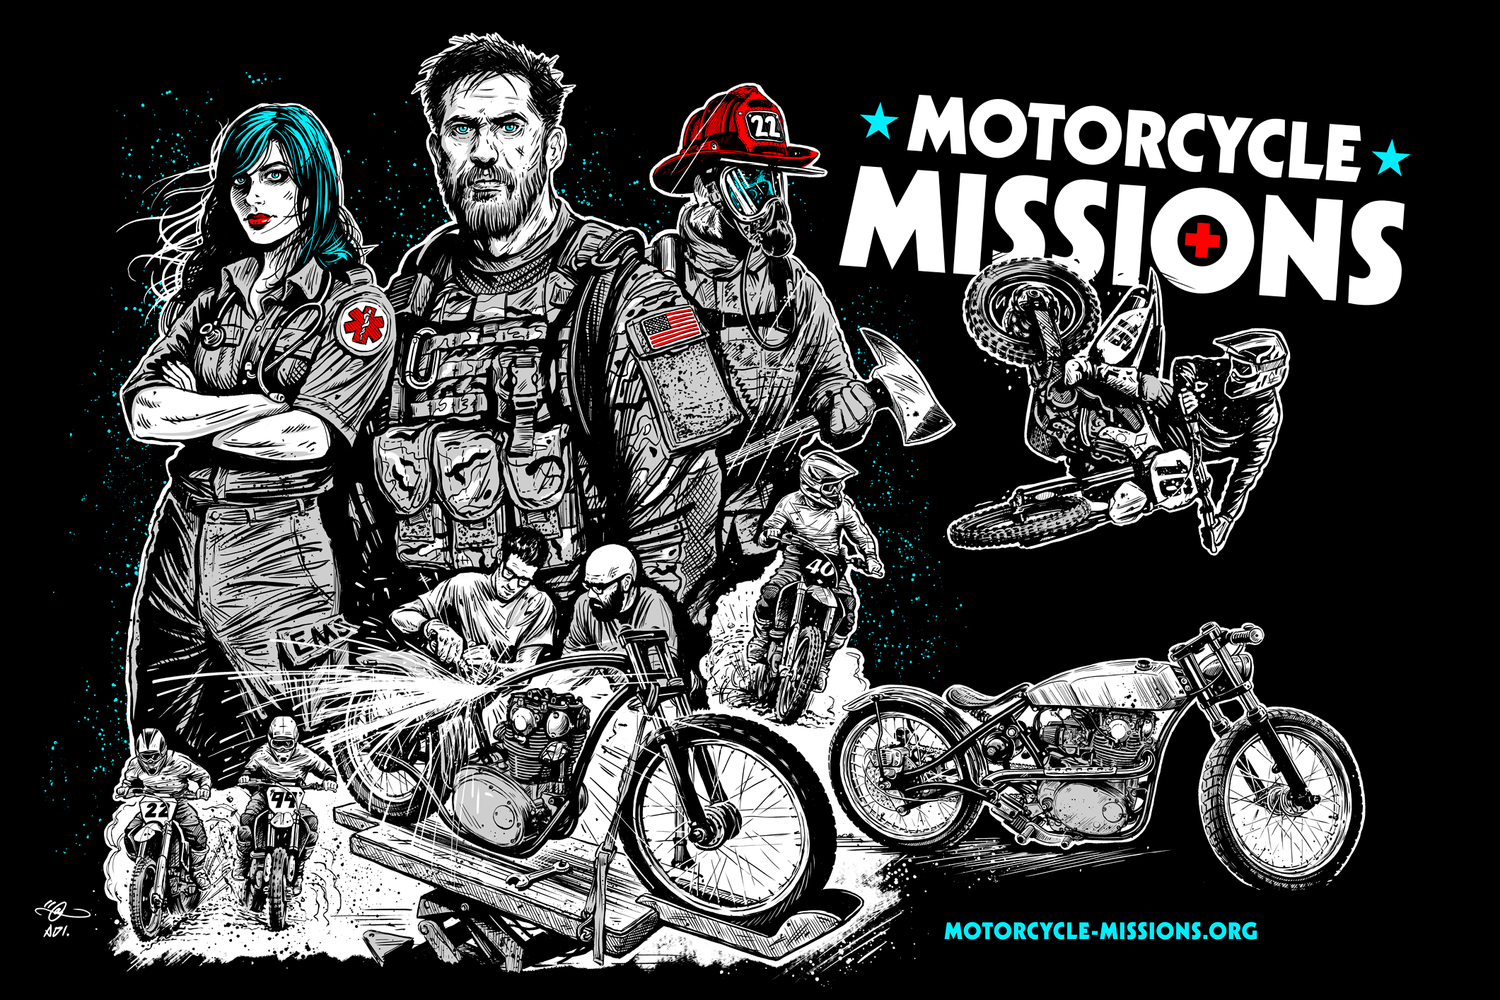 About — Motorcycle Missions